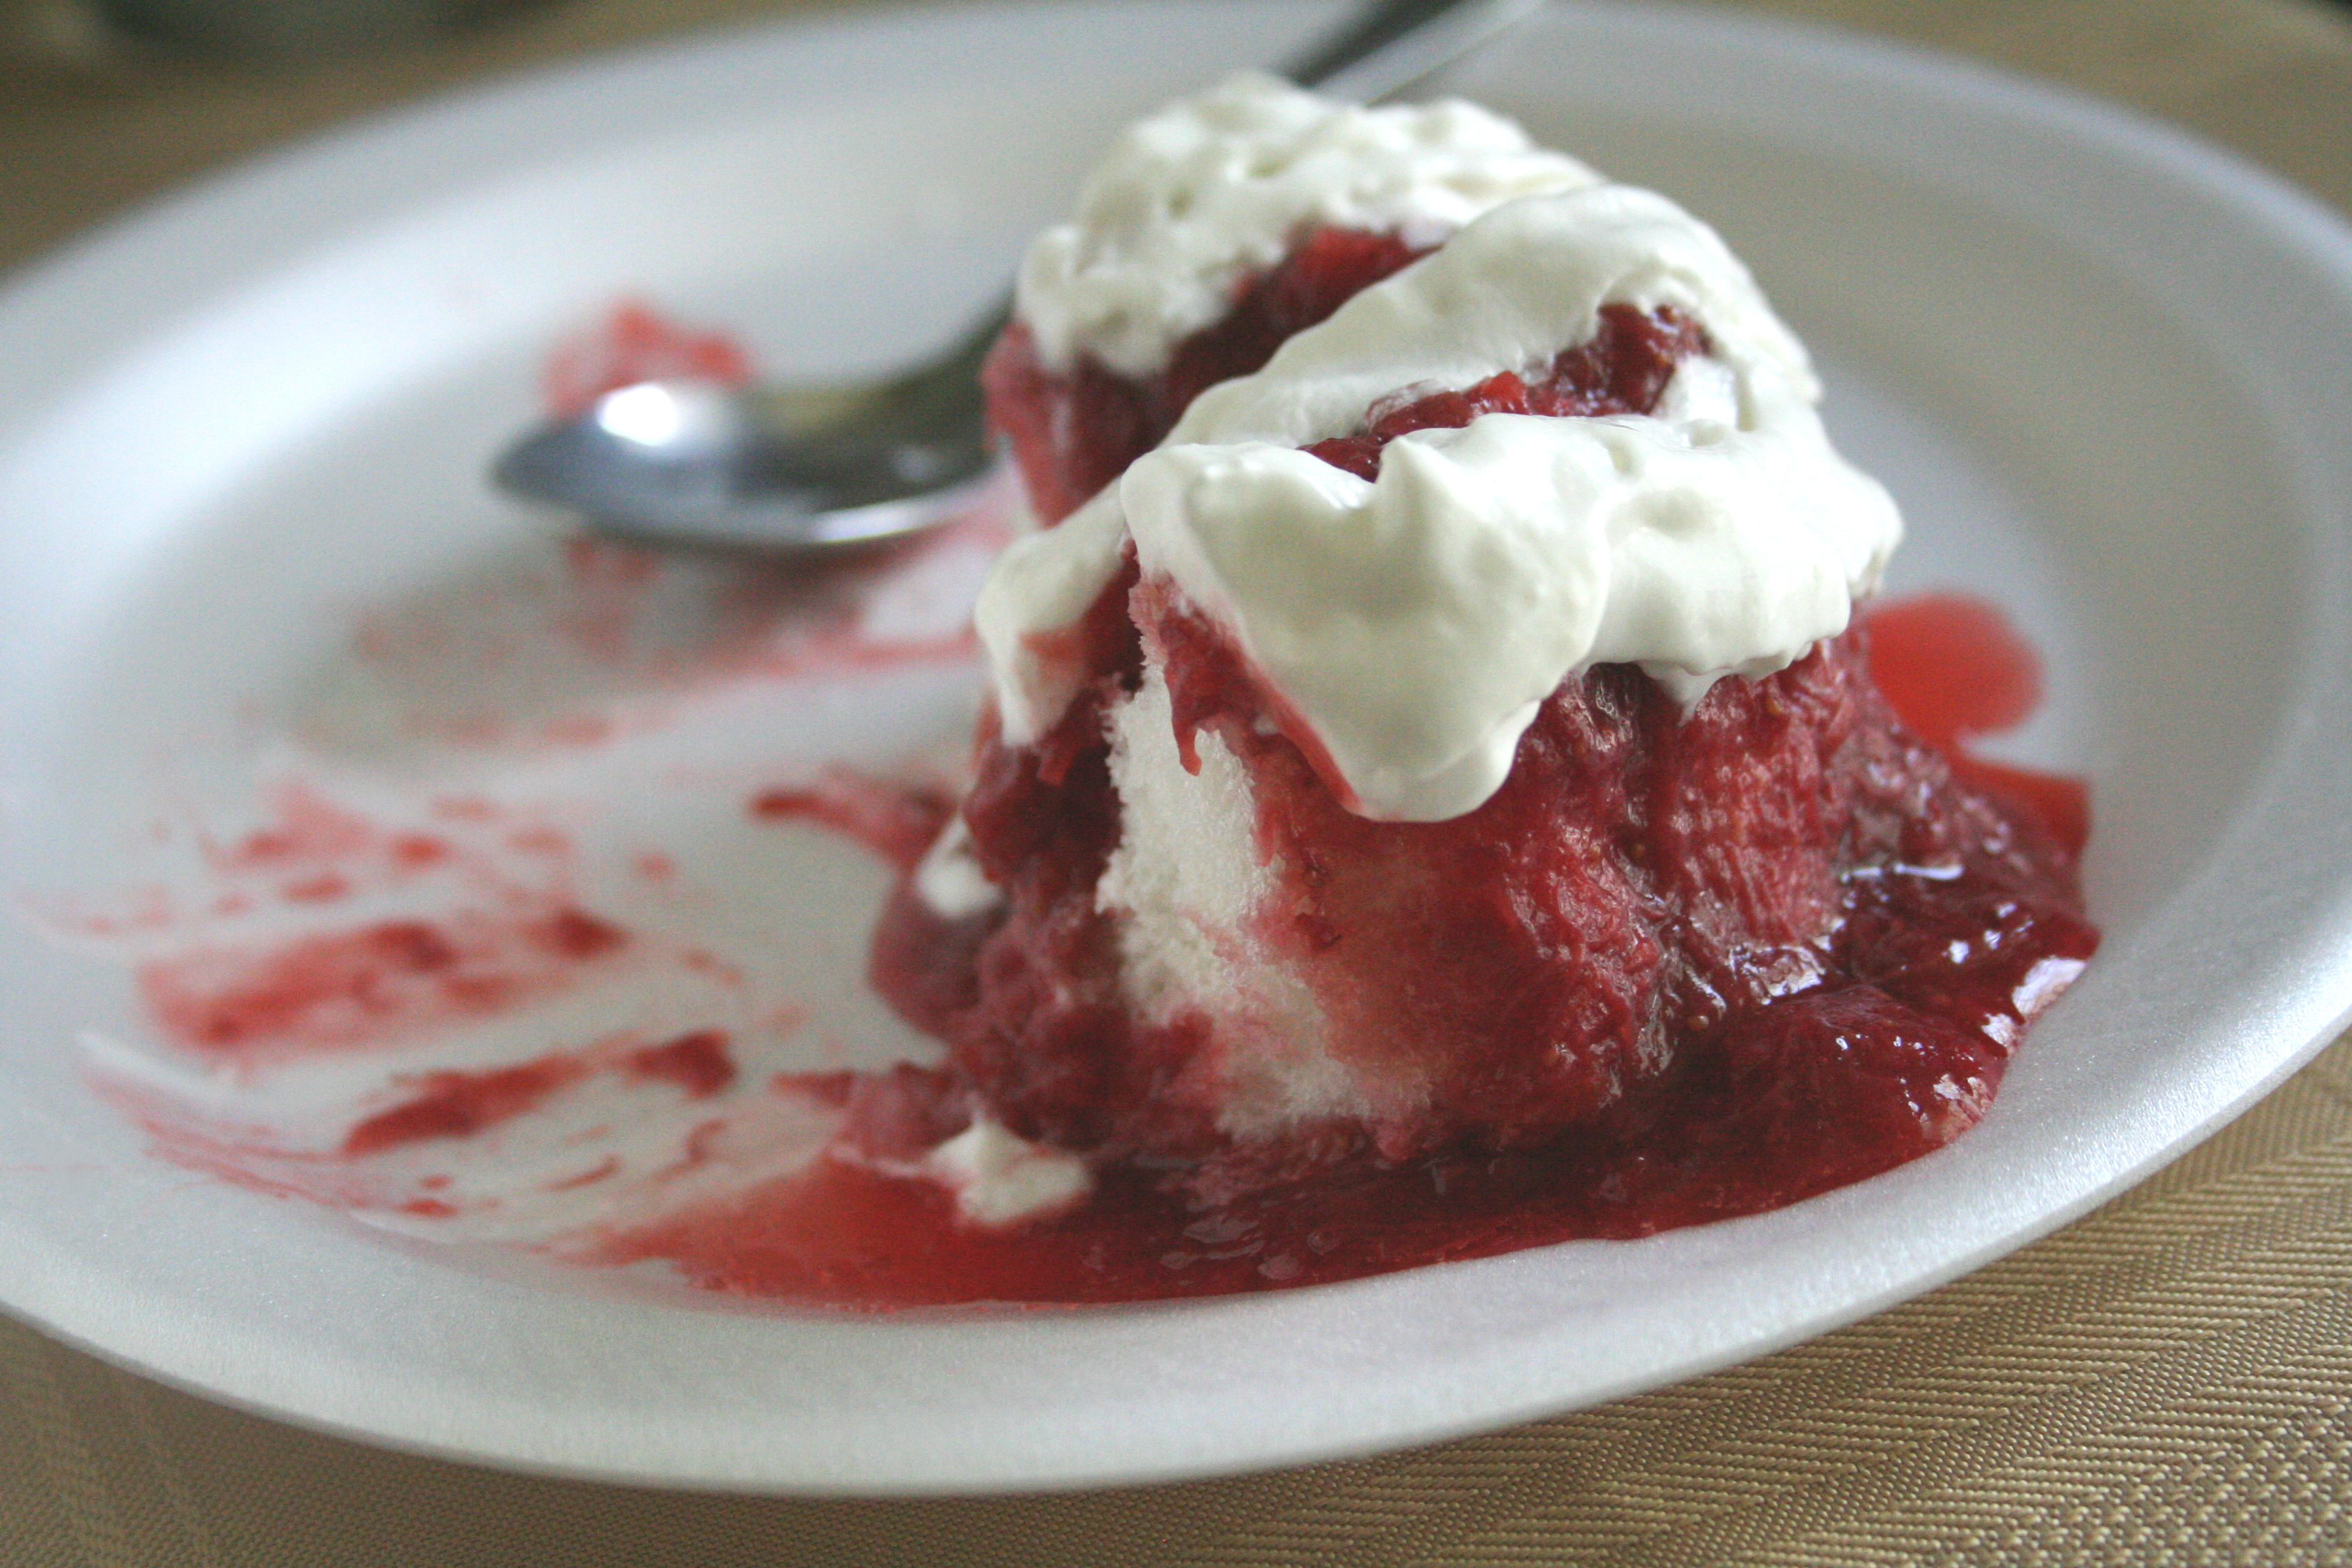 Strawberry-Rhubarb Compote #SundaySupper